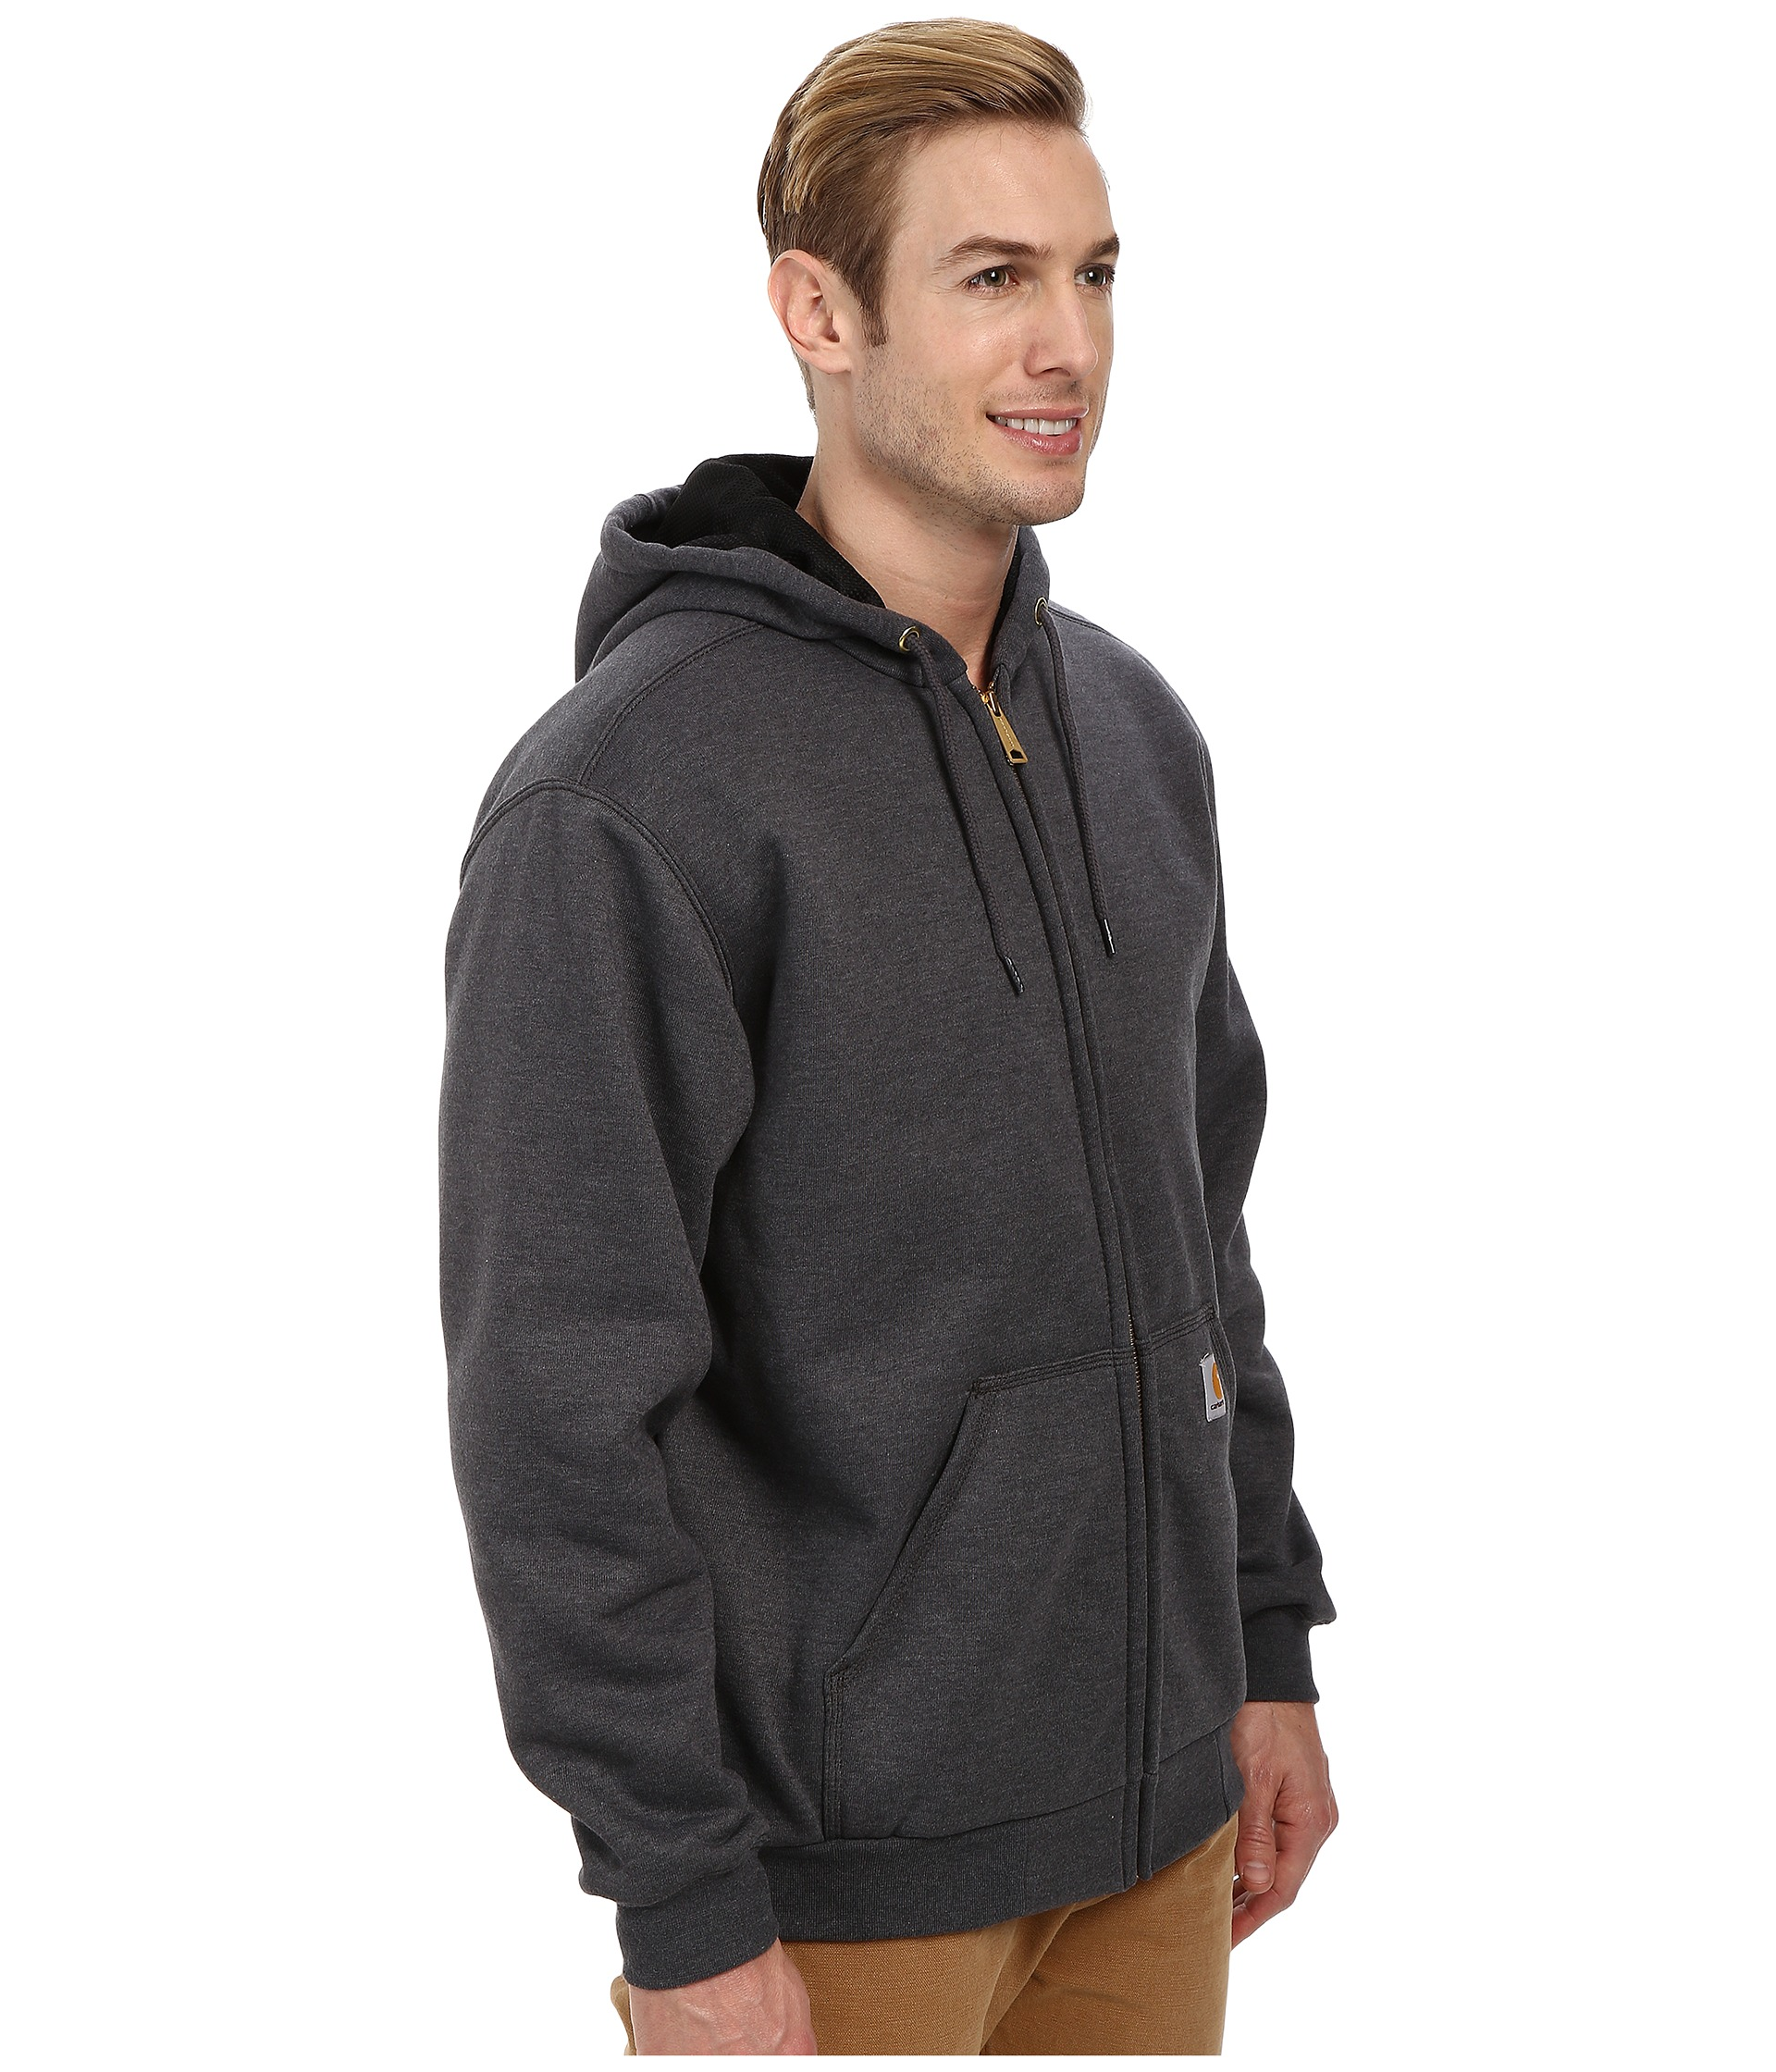 Carhartt Hoodies Men Images Shoes For Home Office